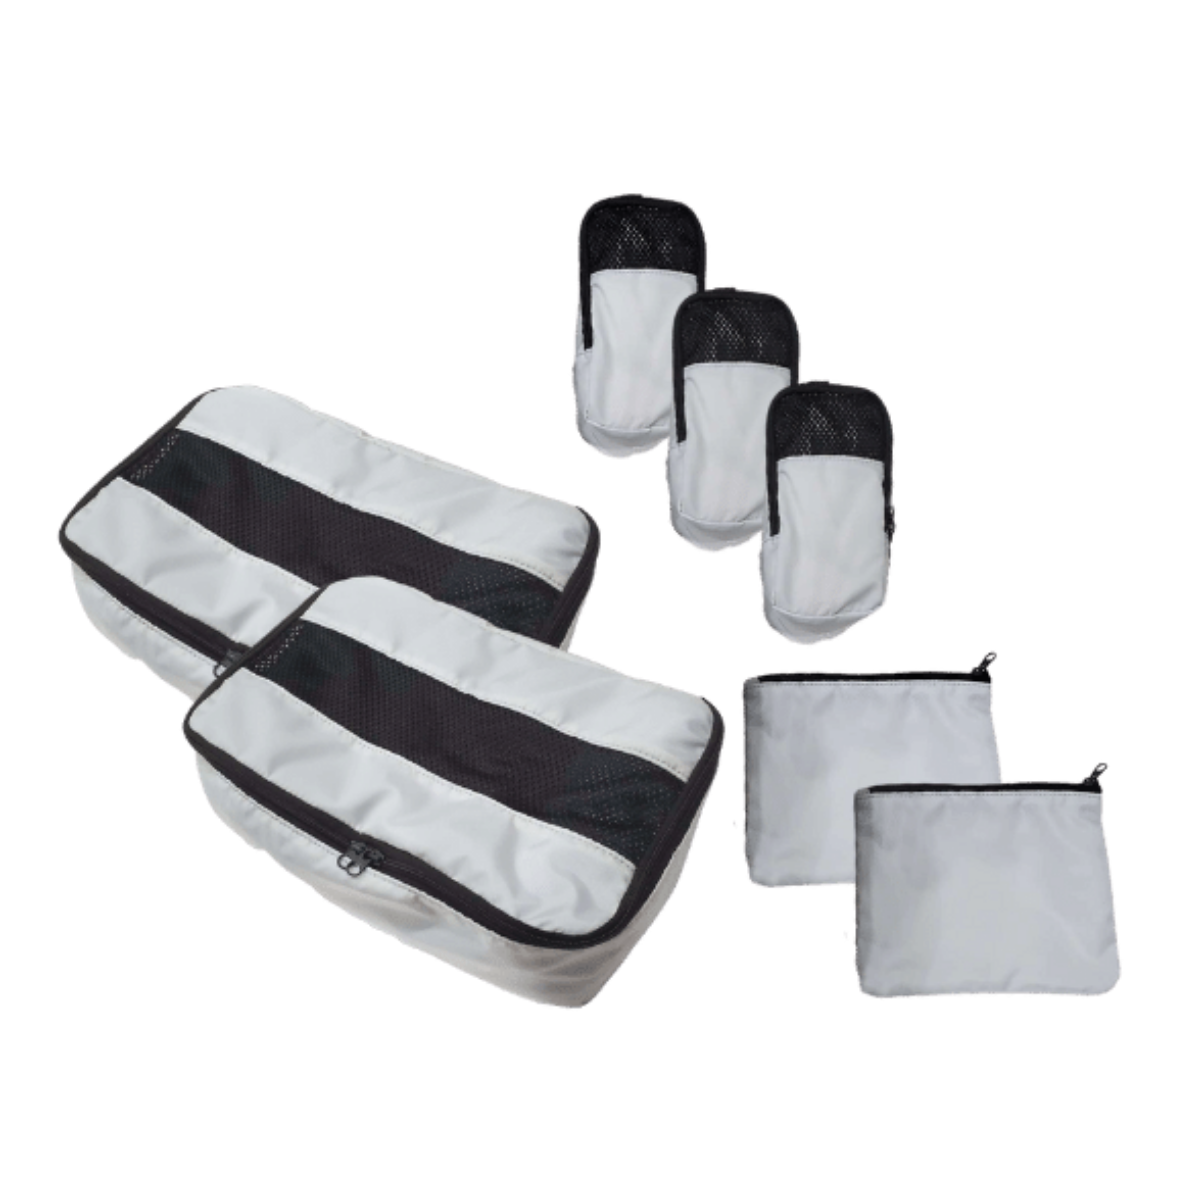 Packing Cubes (Set of 7)